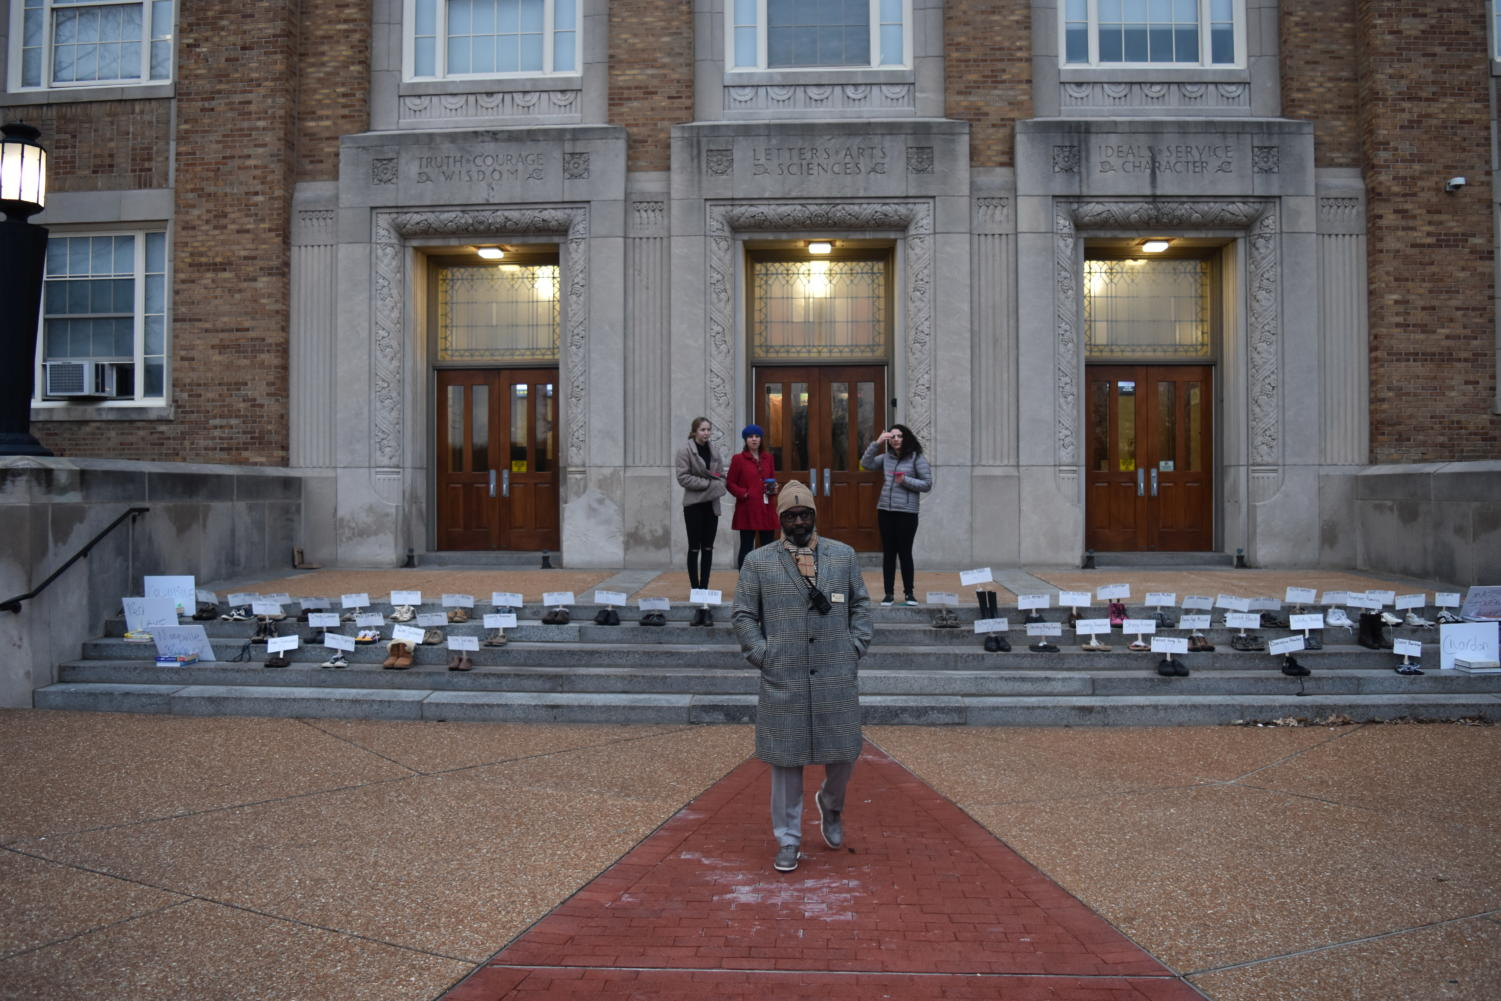 Getting to school at 6 am to set up the display of shoes, Rowan Hoel and Leah Zukosky, seniors, along with Michael Peoples, principal, prepare for students to arrive.